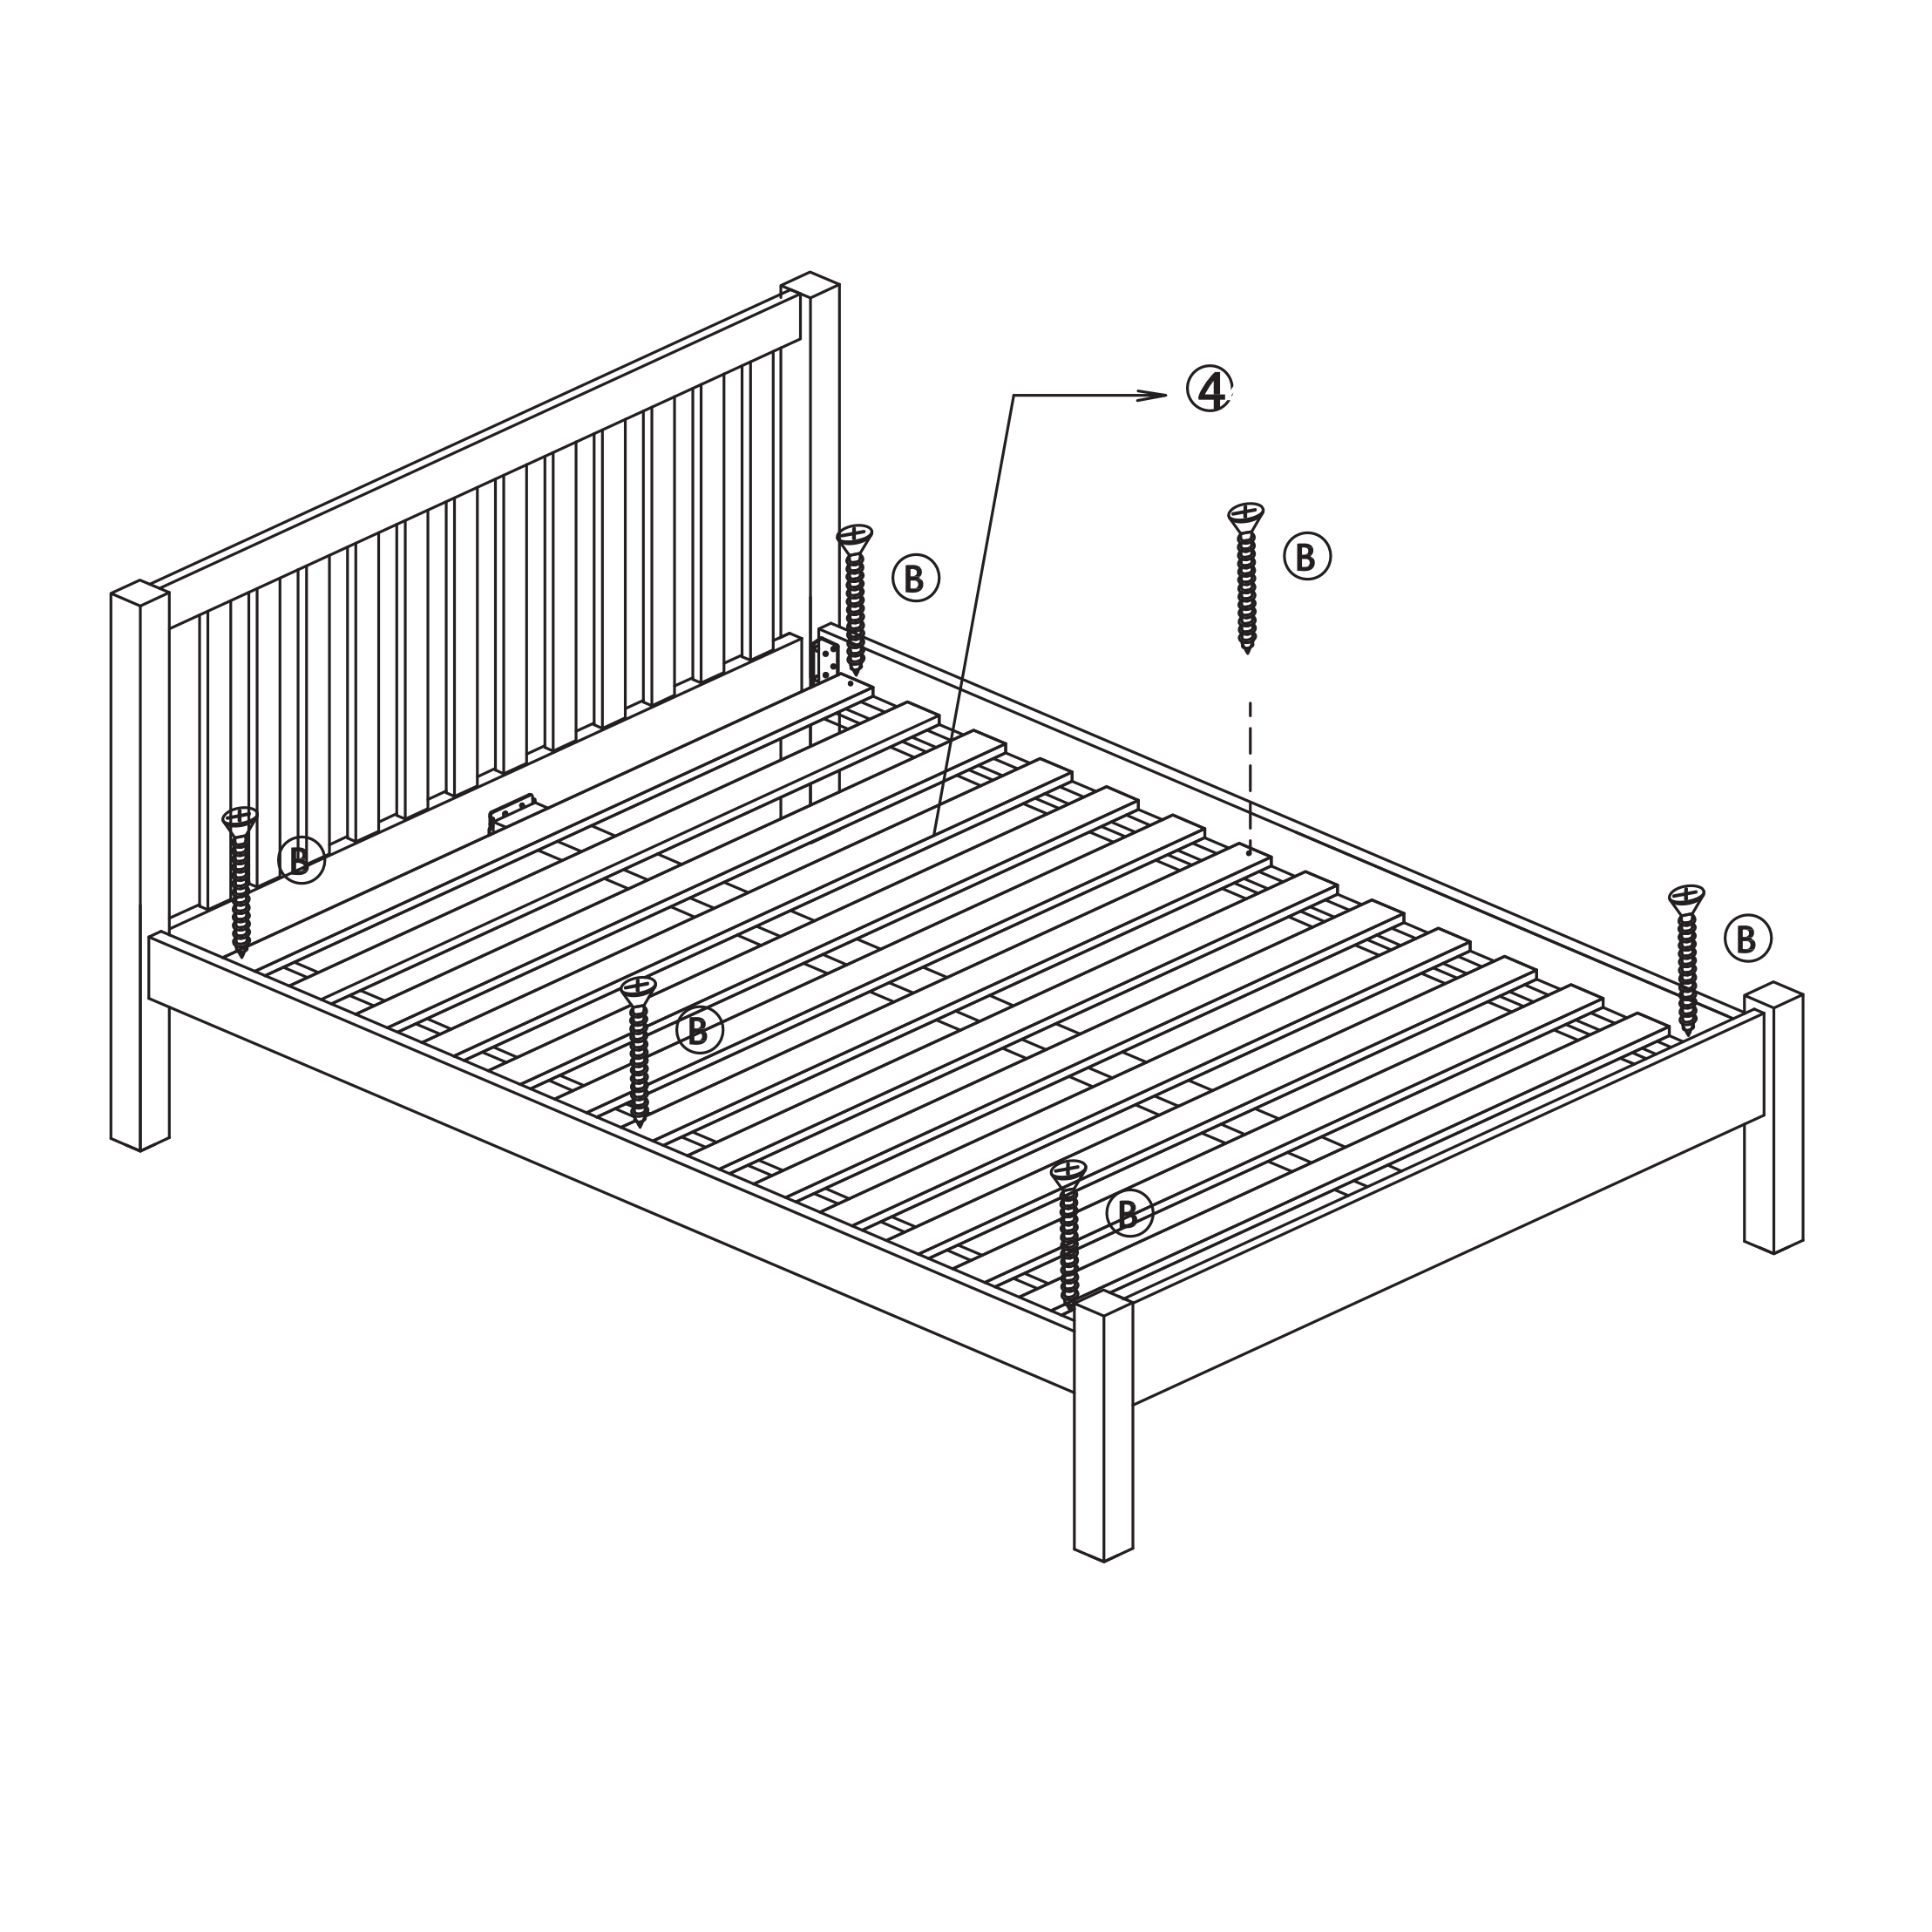 Instructions for assembling a solid slatted bed frame